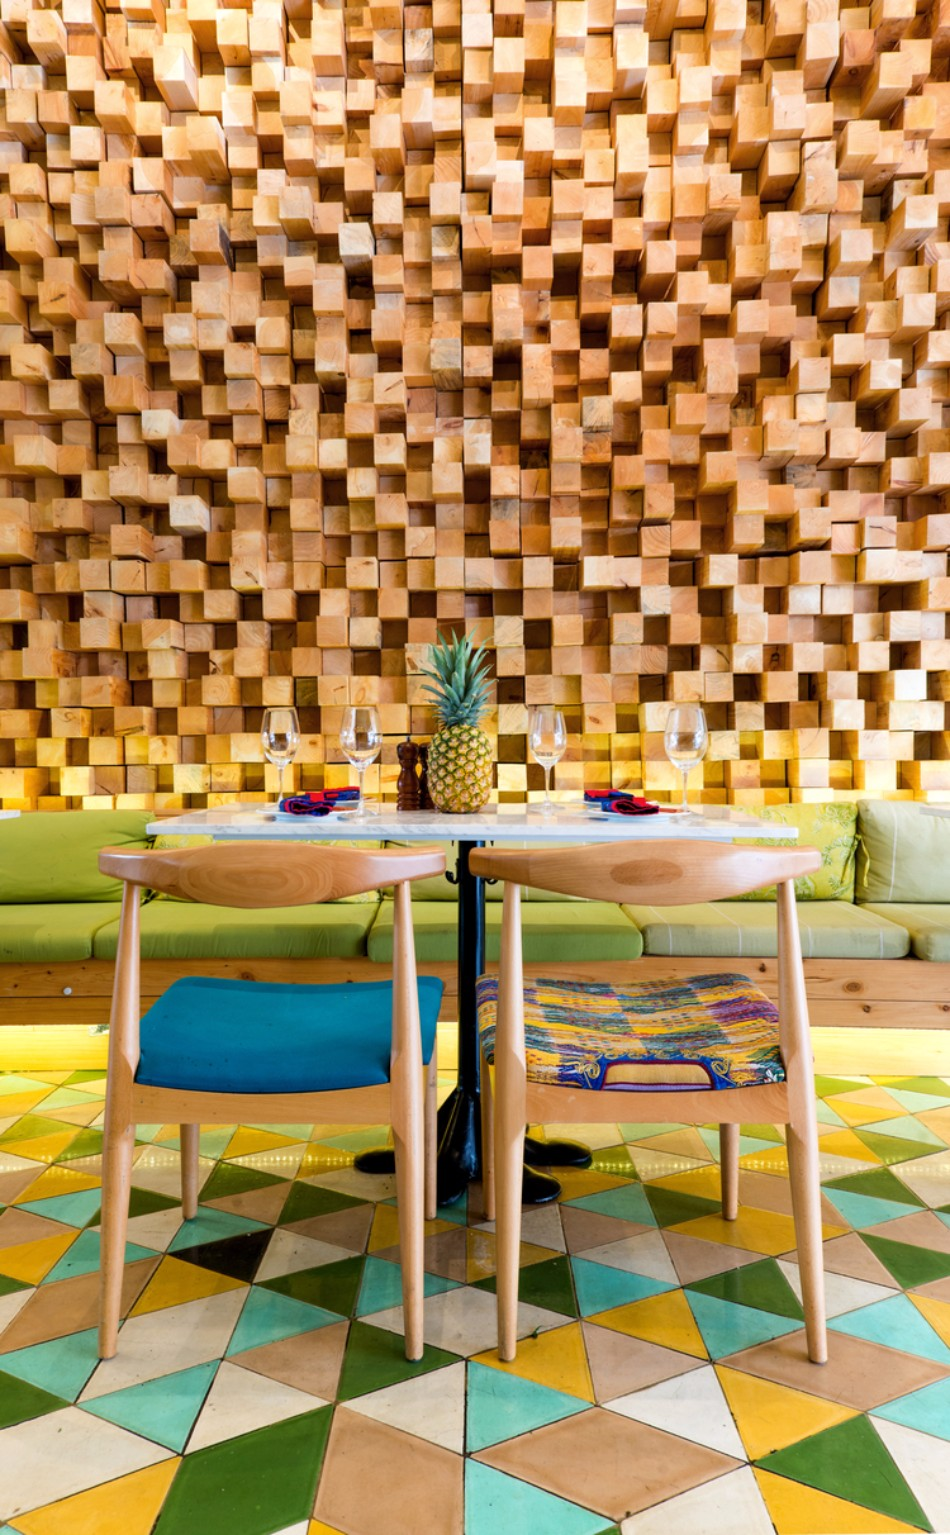 Get Inspired by this Colorful and Outstanding Restaurant Design | www.bocadolobo.com #diningroom #diningarea #thediningroom #diningchairs #restaurants #luxuryrestaurants #restaurantdesign #roomdesign #moderndiningtables @moderndiningtables Restaurant Design Get Inspired by this Colorful and Outstanding Restaurant Design Get Inspired by this Colorful and Outstanding Restaurant Design 2